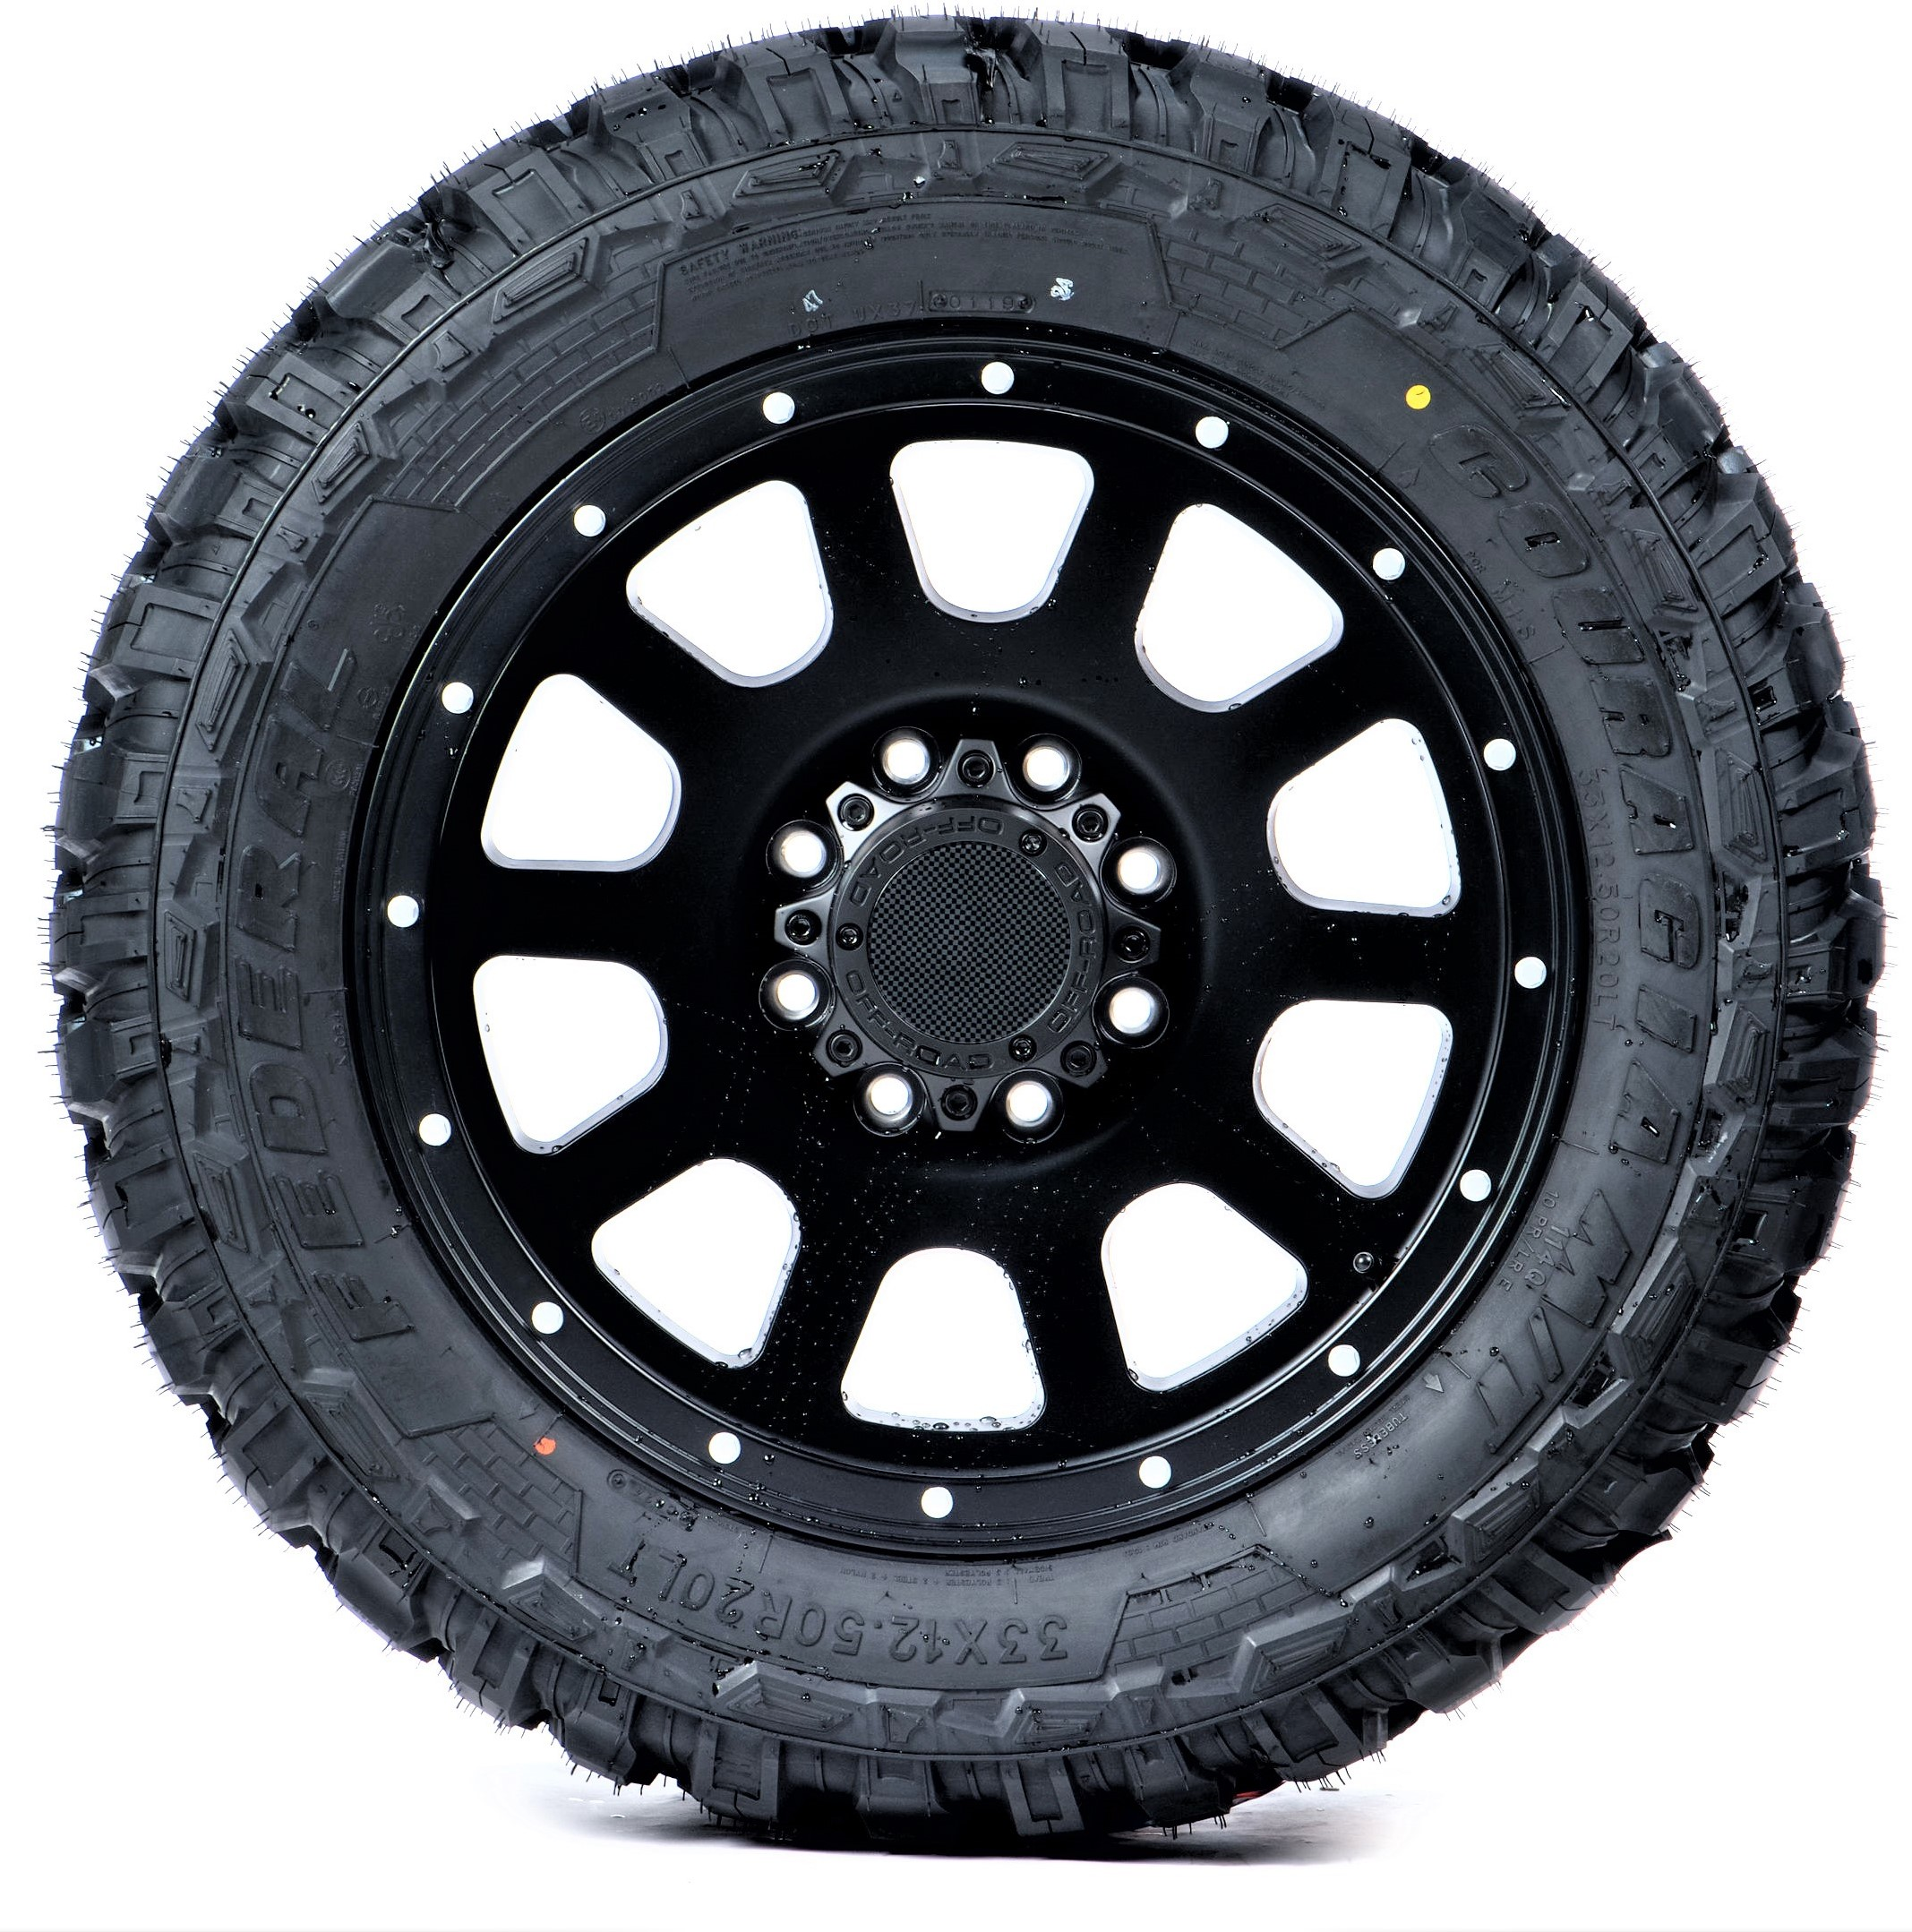 31×10 50r15 Tires >> Details About 4 New Federal Couragia M T Mud Tires 31x10 50r15 31 10 50 15 31105015 6pr